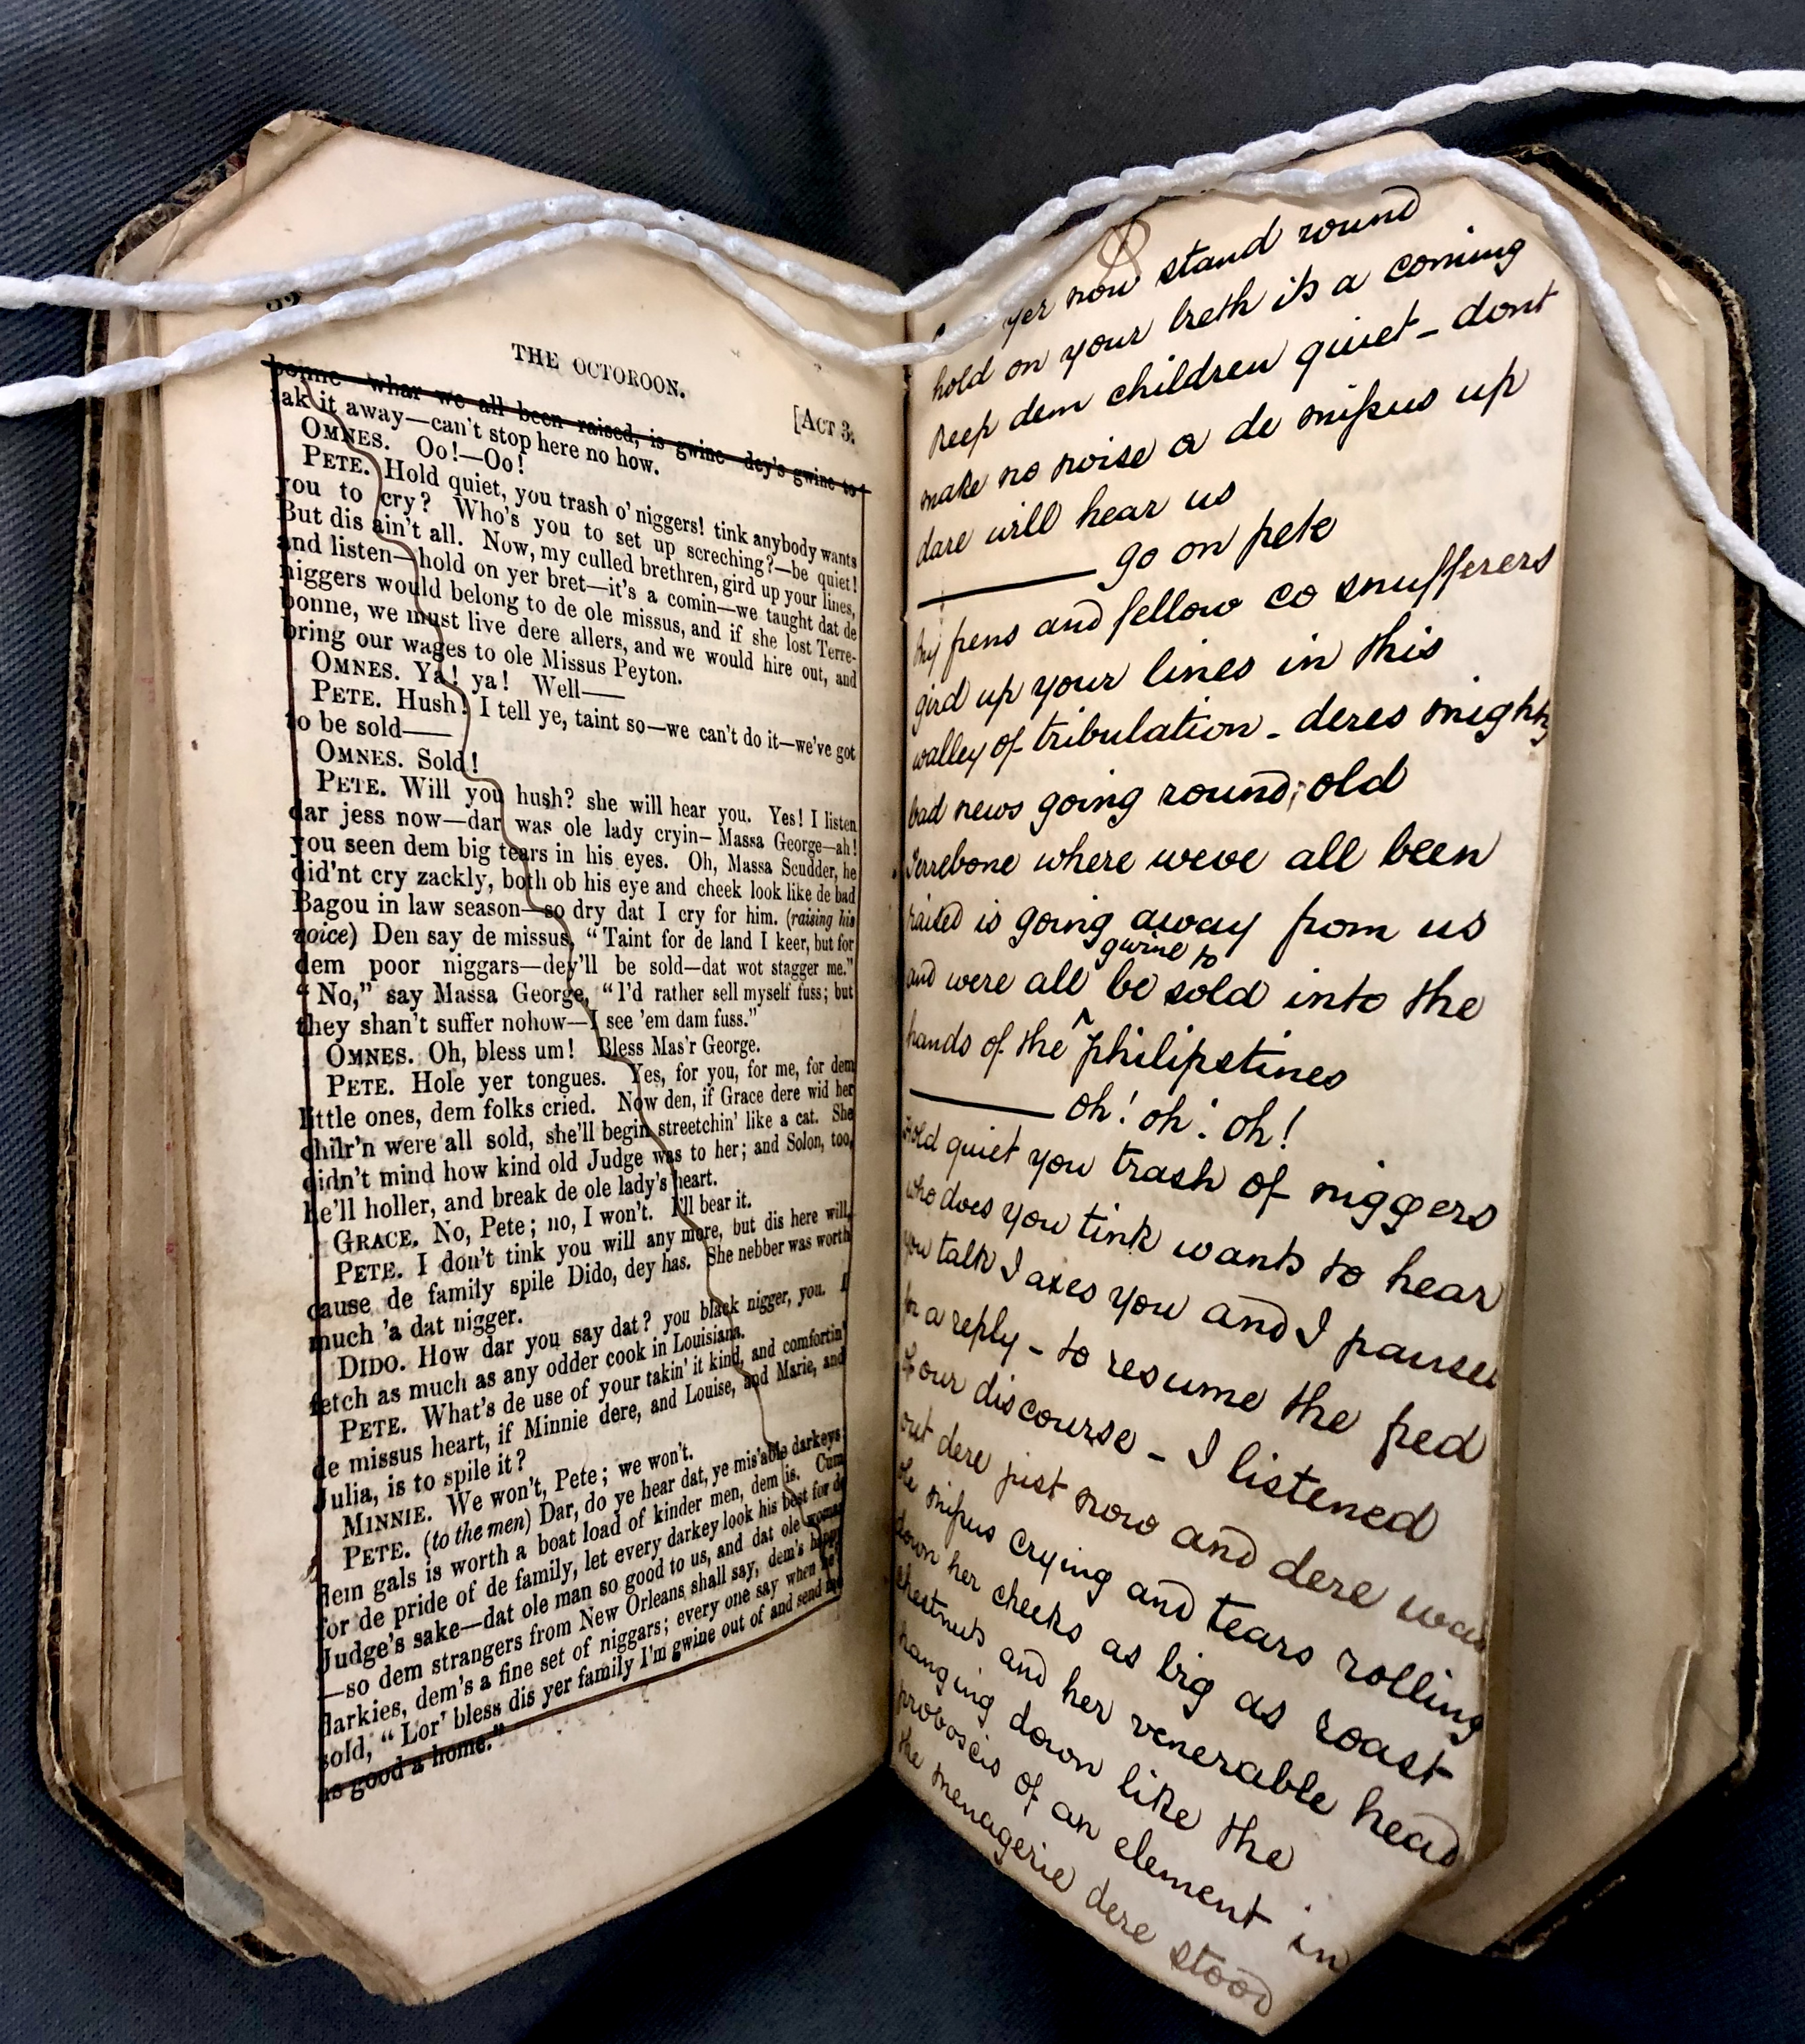 Photograph of the play text for Boucicault's play 'The Octoroon', from the Pettingell collection. The printed text is crossed out and handwritten revisions are included on the next page.